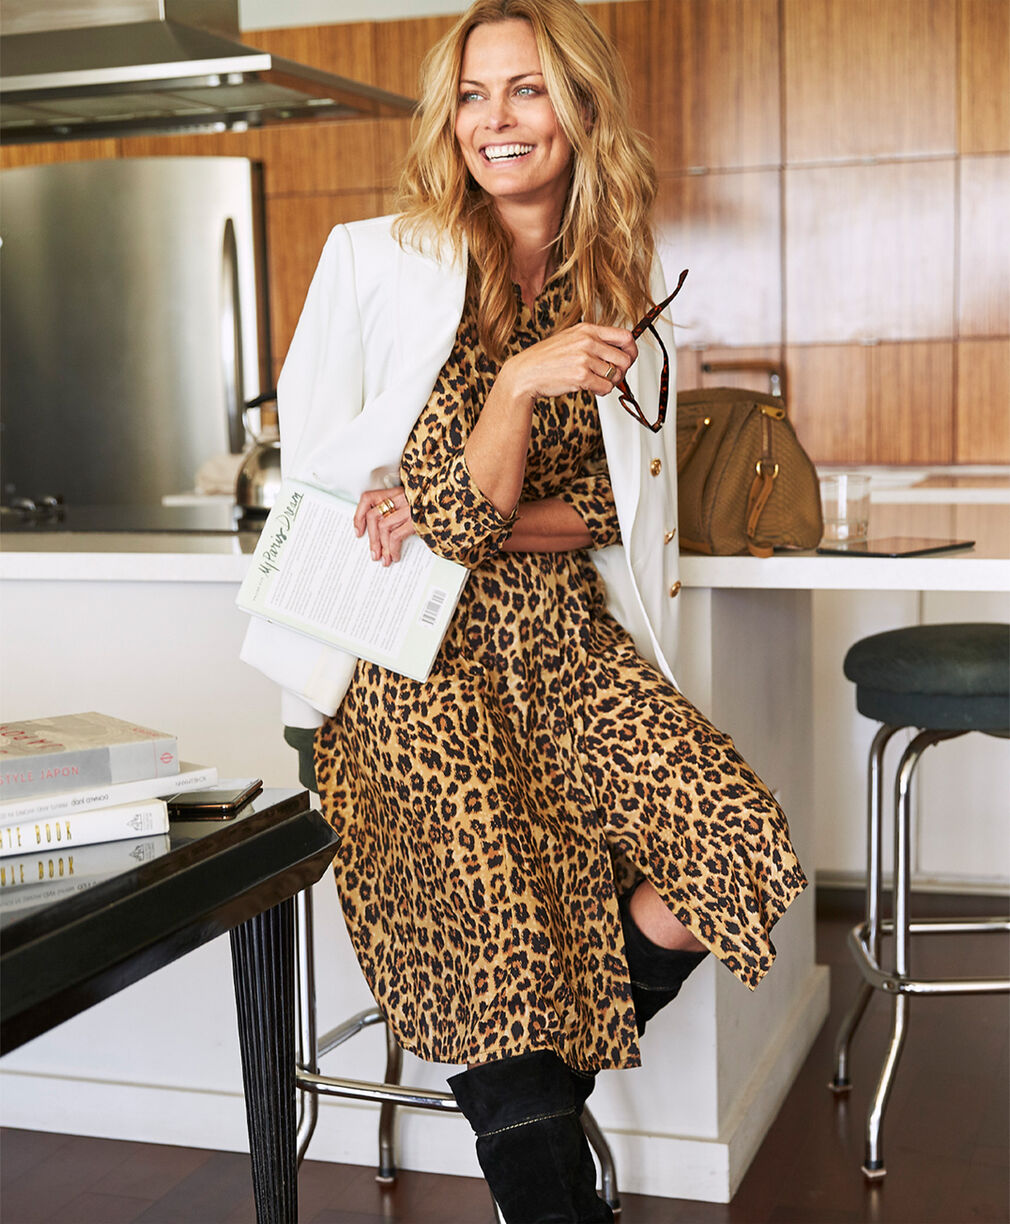 The Friday Blazer | The Friday Blazer | Leopard Print Button-through Long Printed Dress | By Cotton Traders